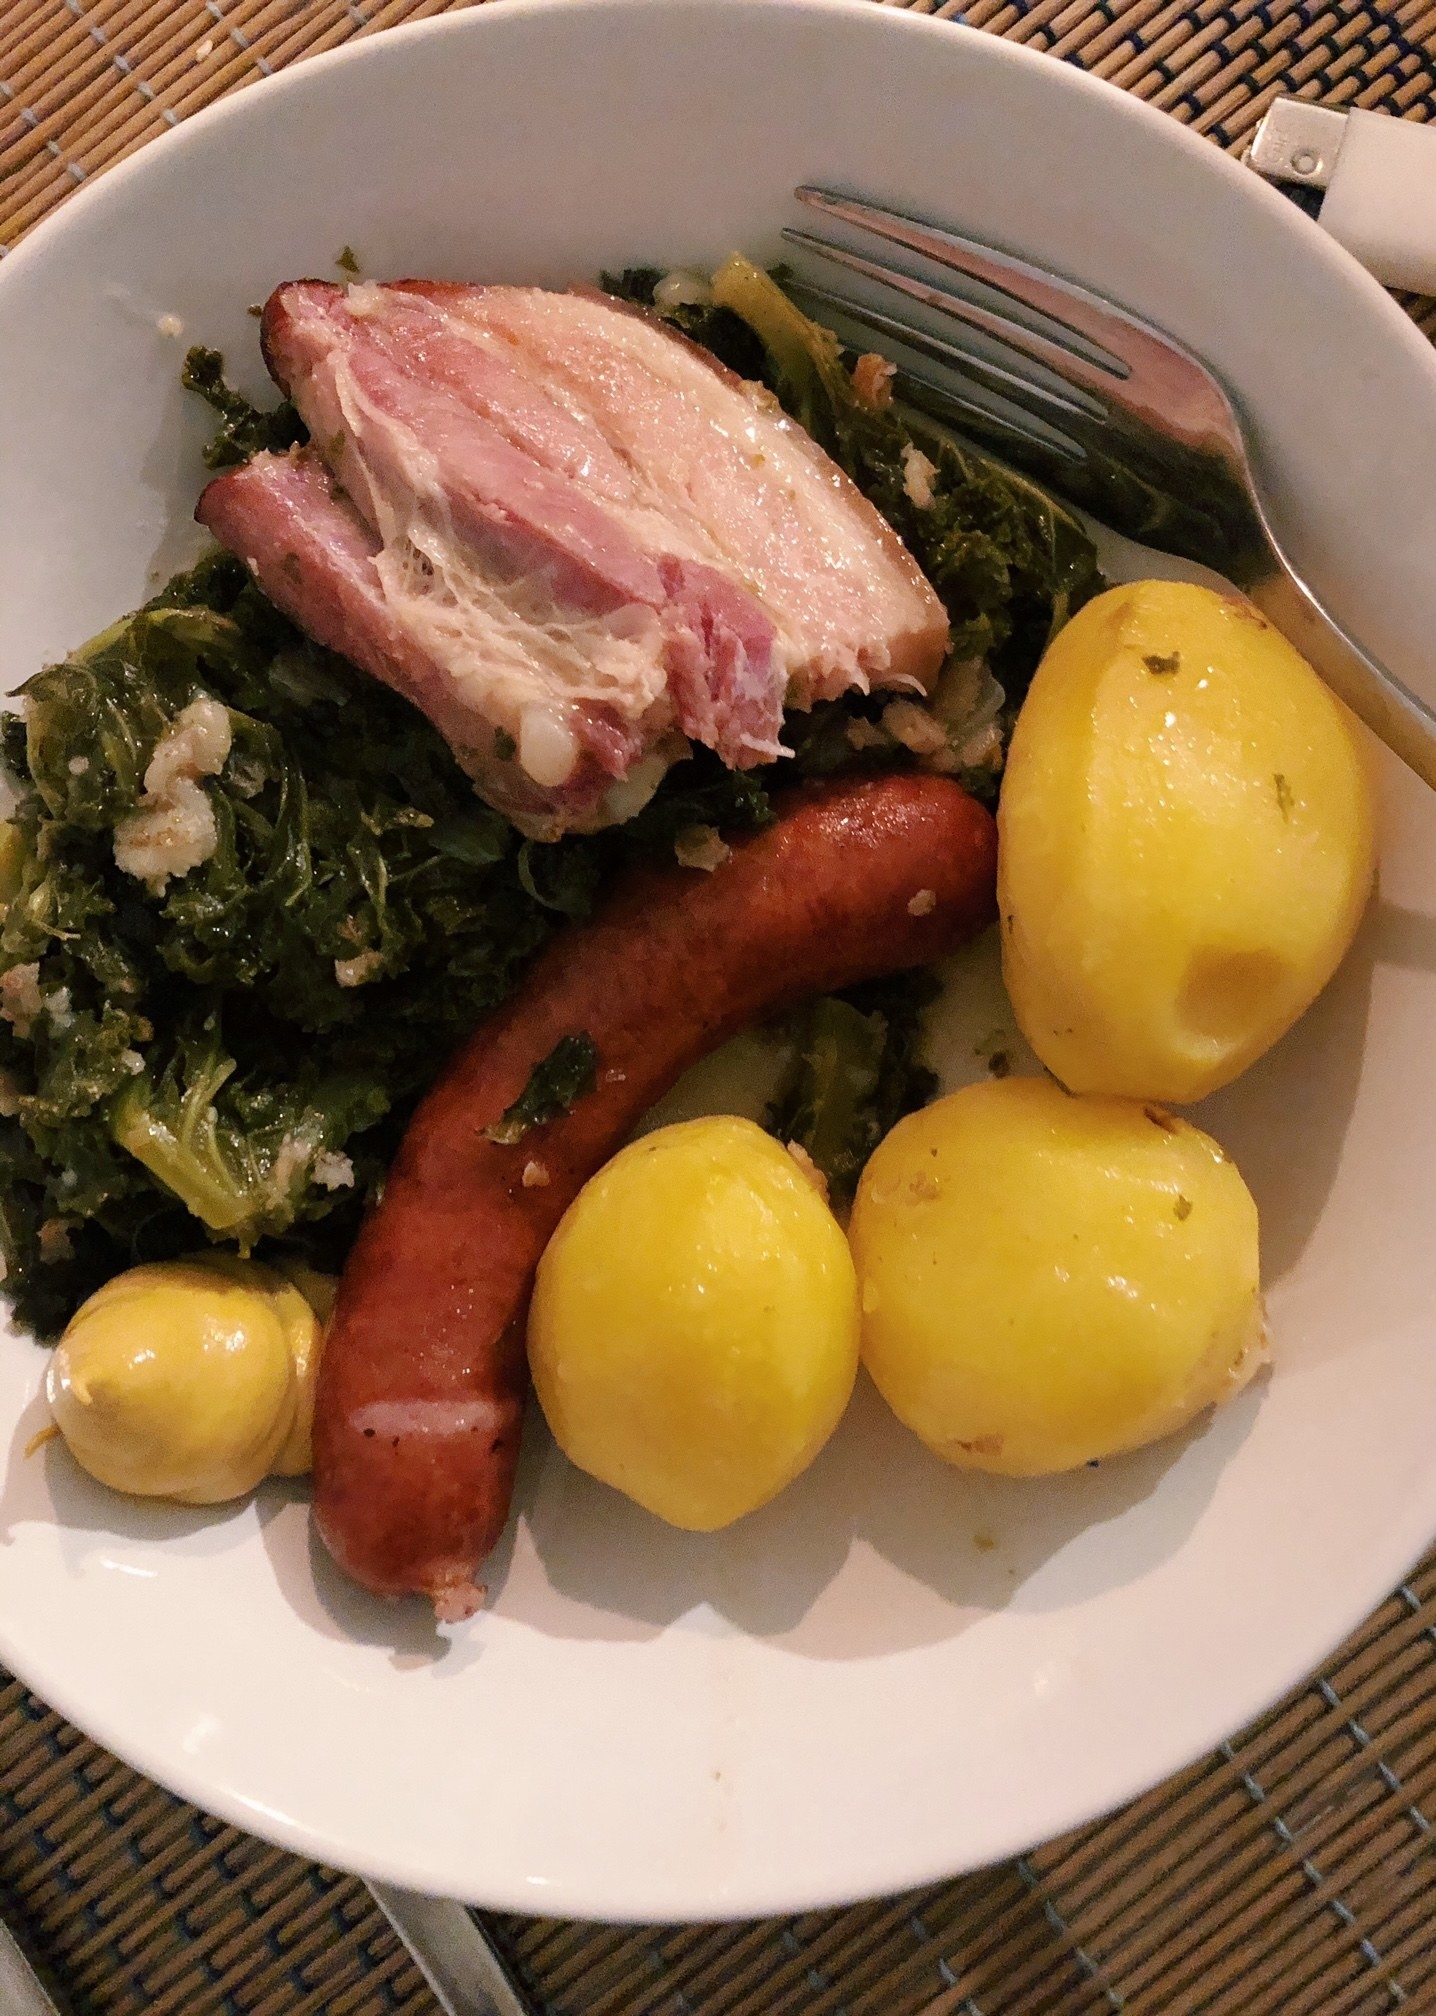 Homemade German kale stew with smoked sausage and boiled potatoes